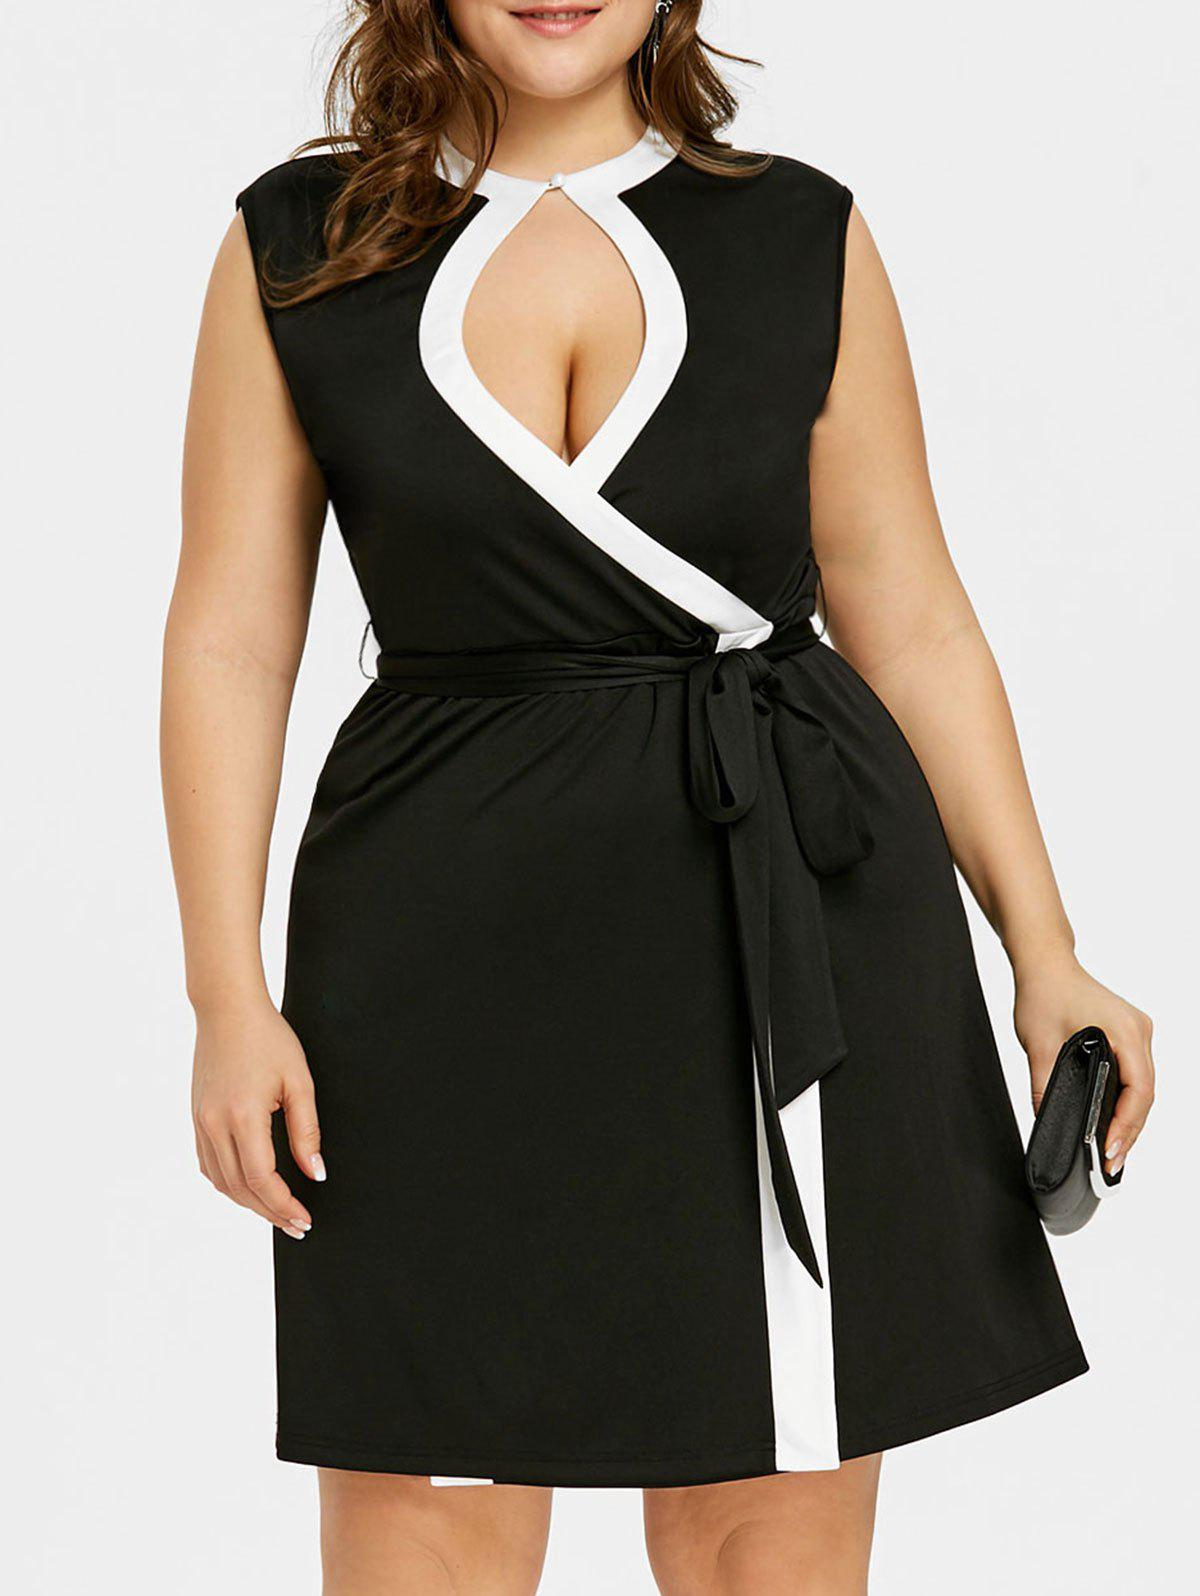 Plus Size Keyhole Neck Sleeveless Contrast Trim Dress girls contrast panel sleeveless dress